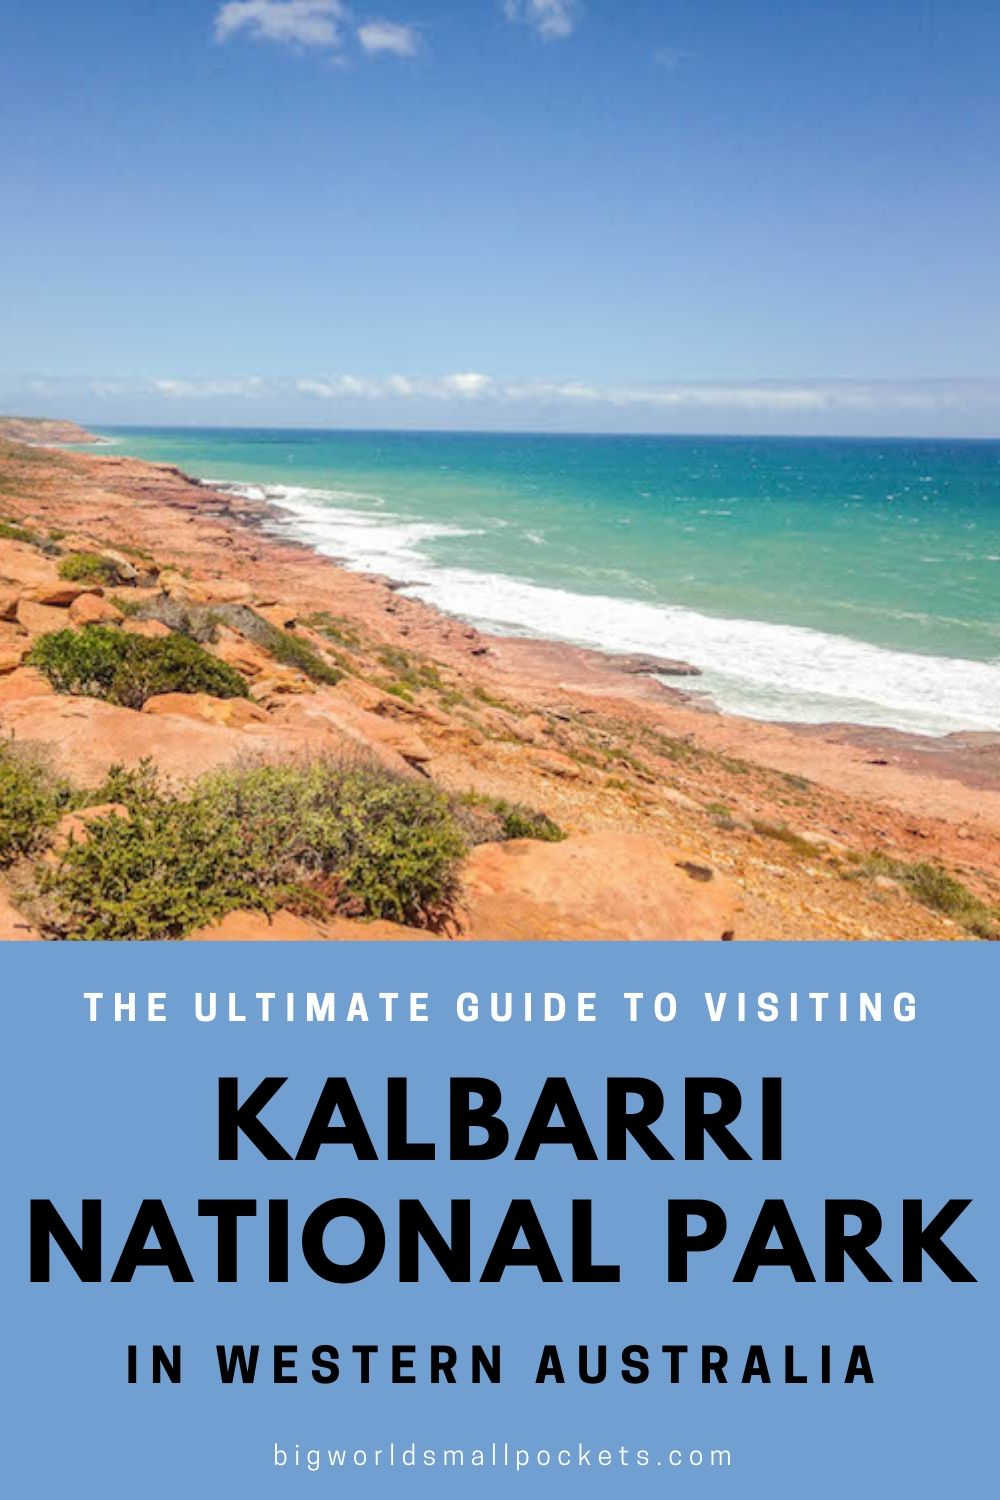 The Ultimate Travel Guide to Kalbarri National Park in Western Australia